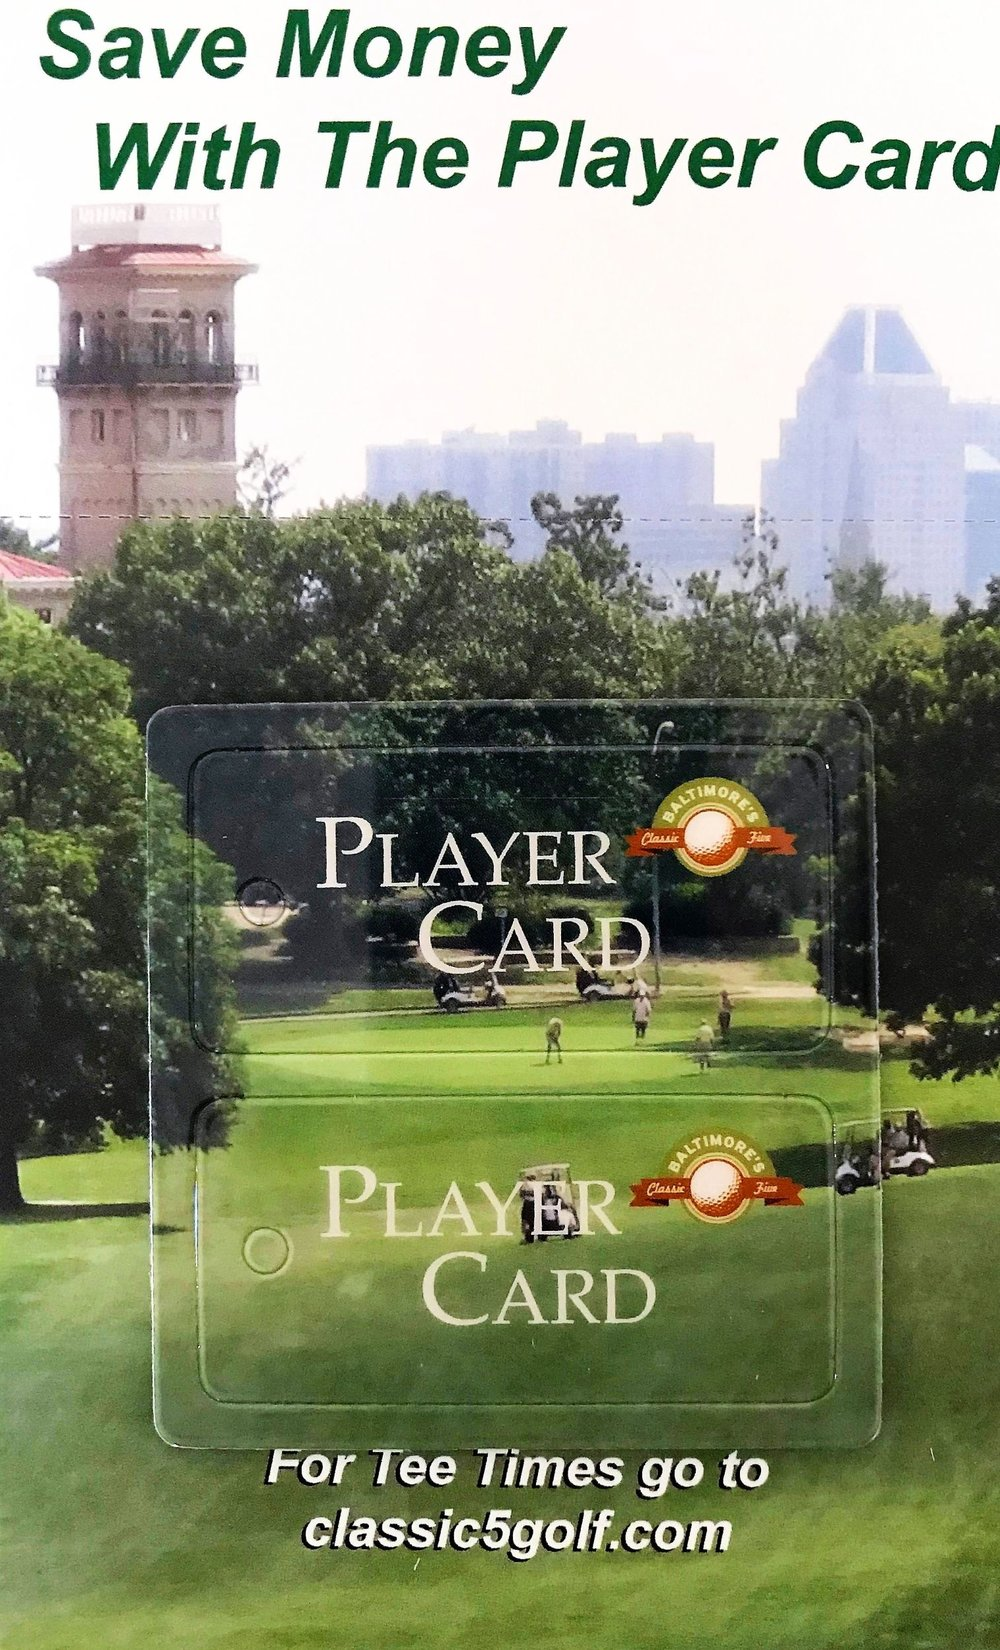 Player Card 2019 Smaller.jpg